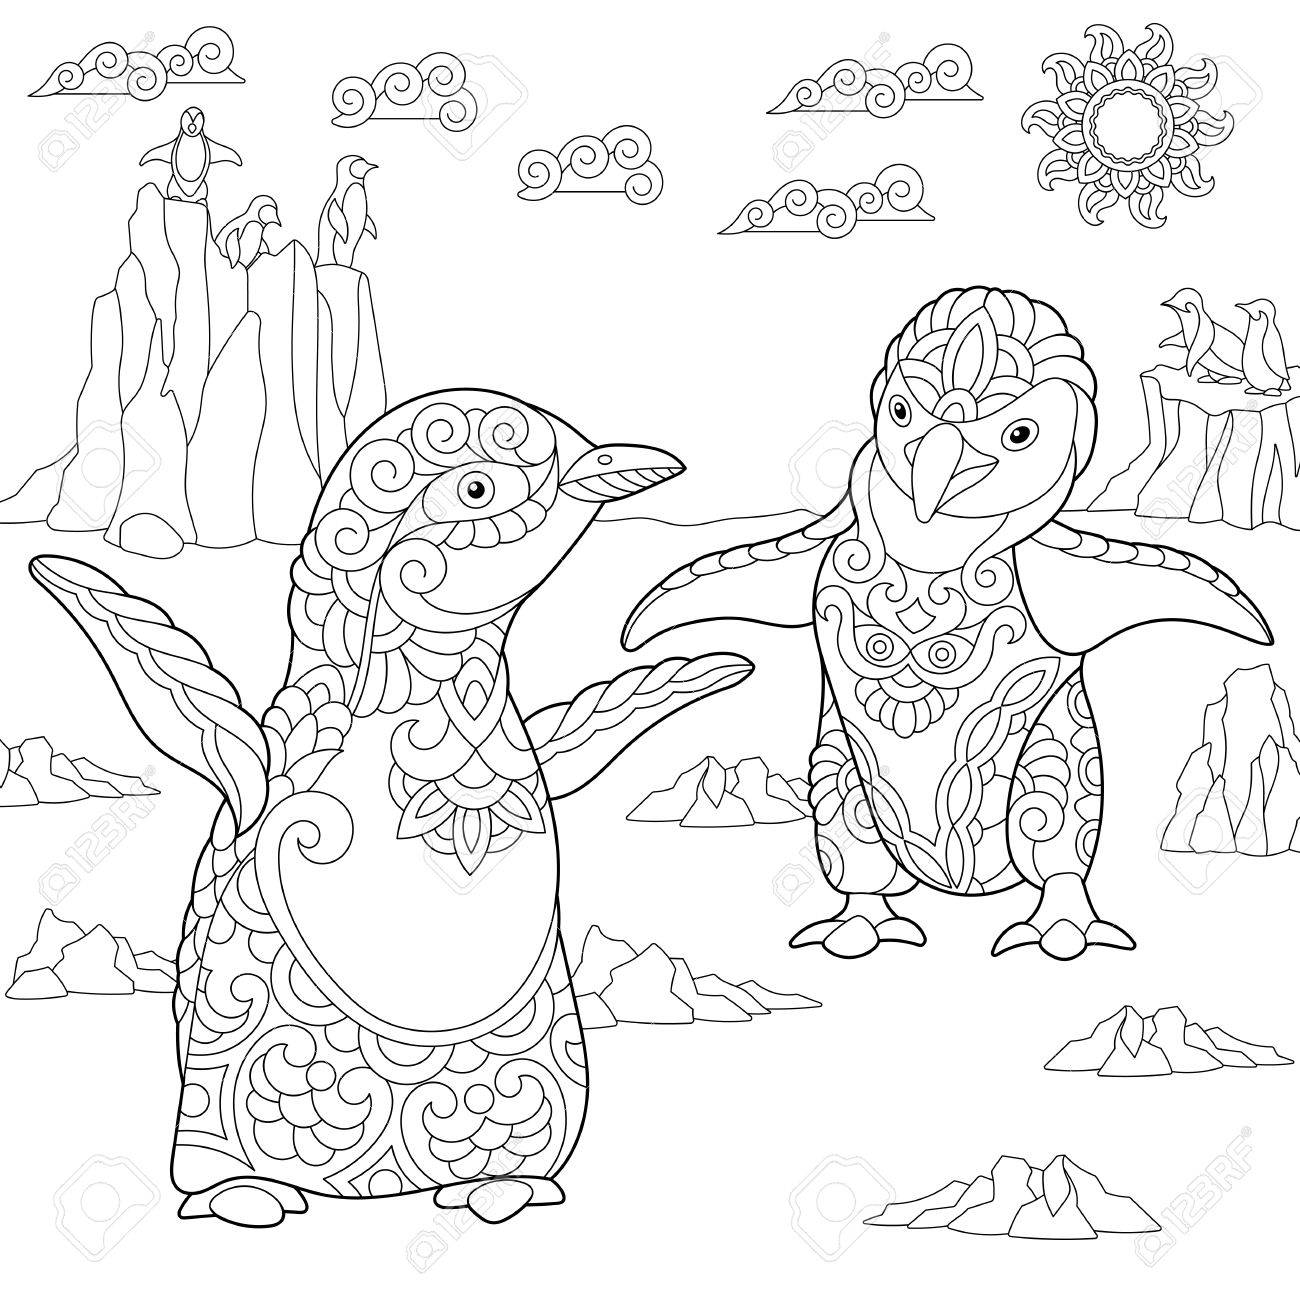 1300x1300 Coloring Page Of Young Penguins Among Arctic Landscape. Freehand